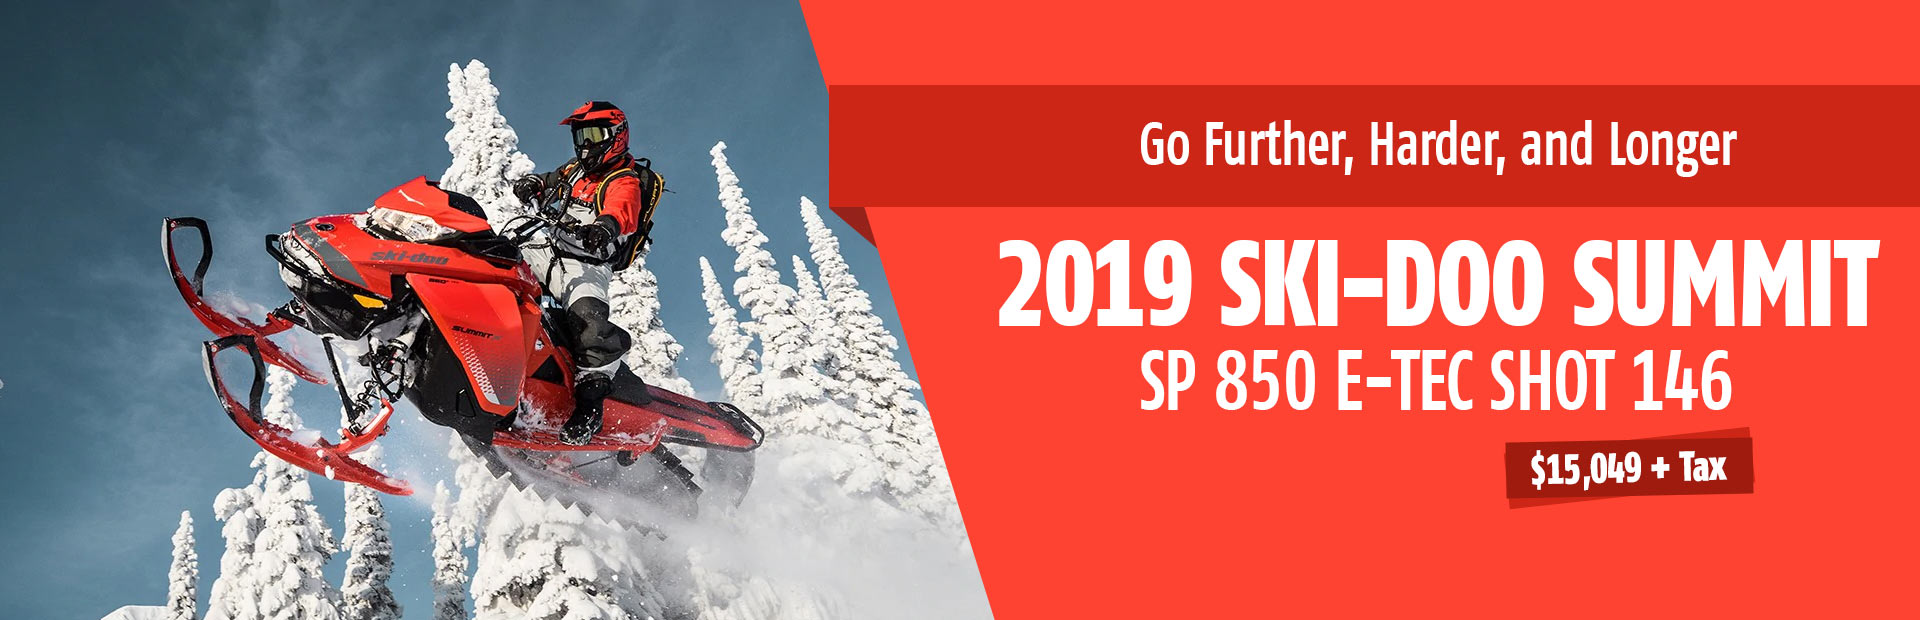 Get the 2019 Ski-Doo Summit SP 850 E-TEC SHOT 146 for $15,049 + tax!